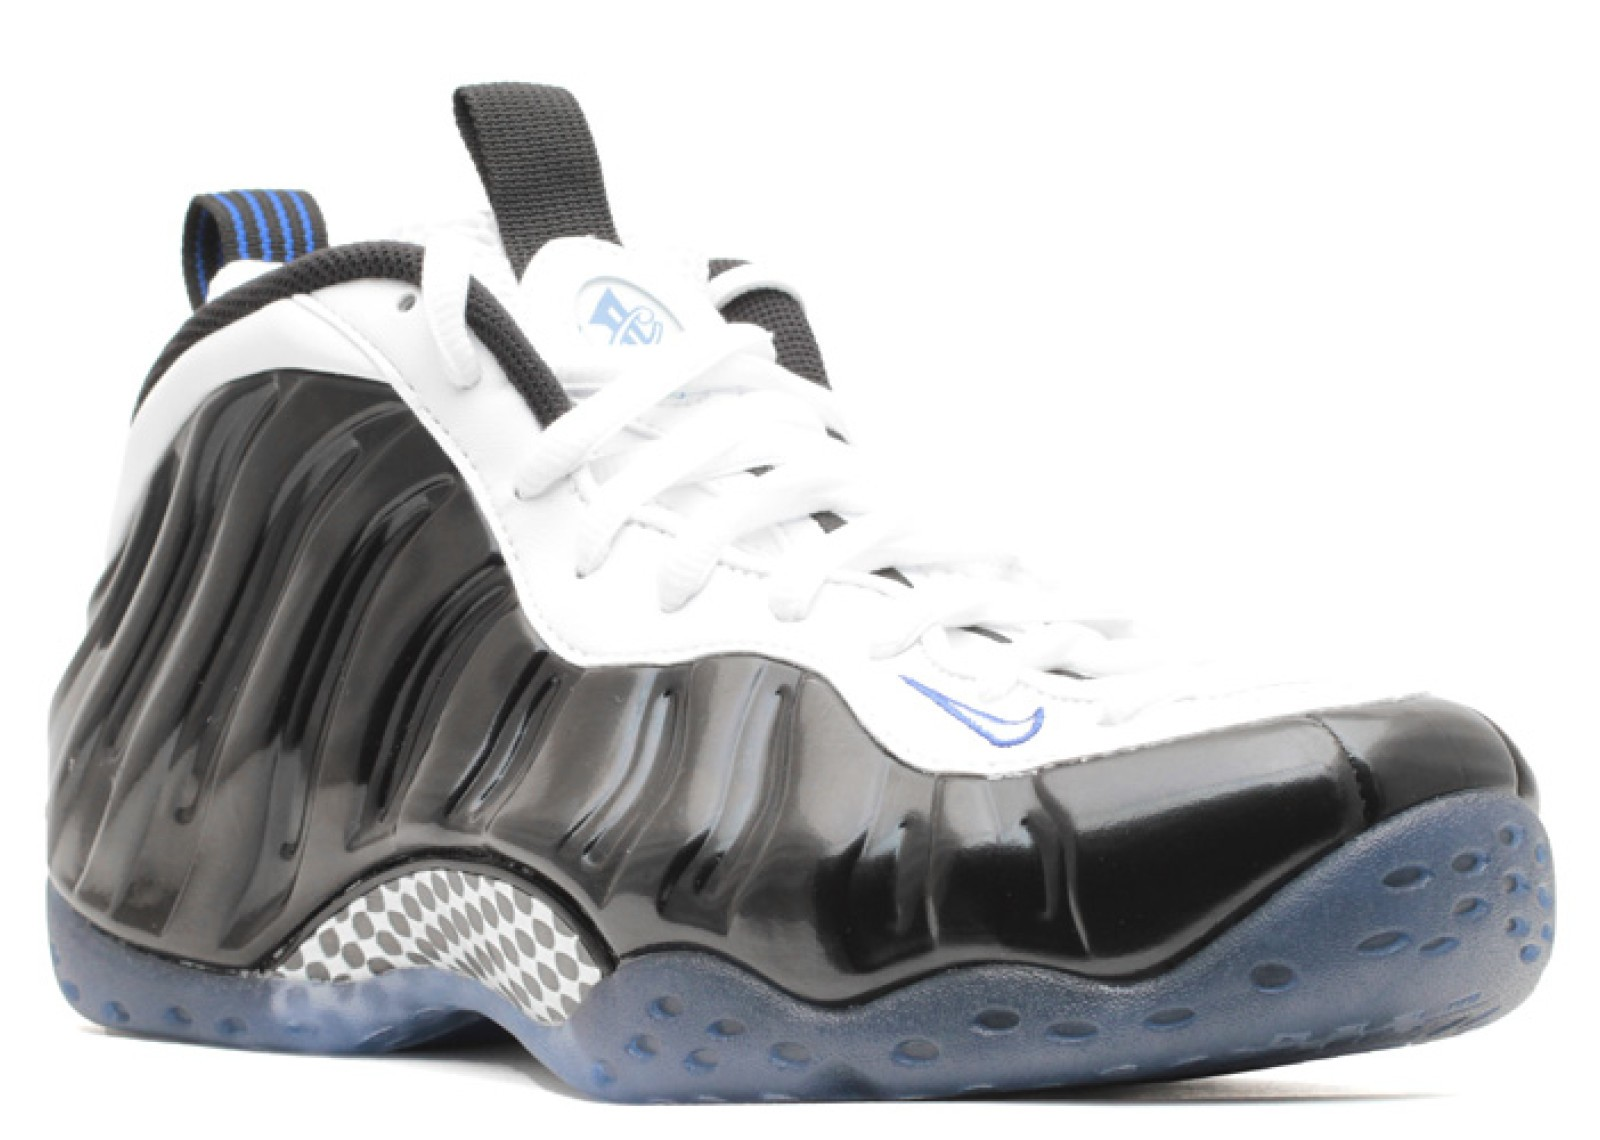 brand new ec0b2 2908b Air Foamposite One Concord Royal White Black Game 314996-005 ...